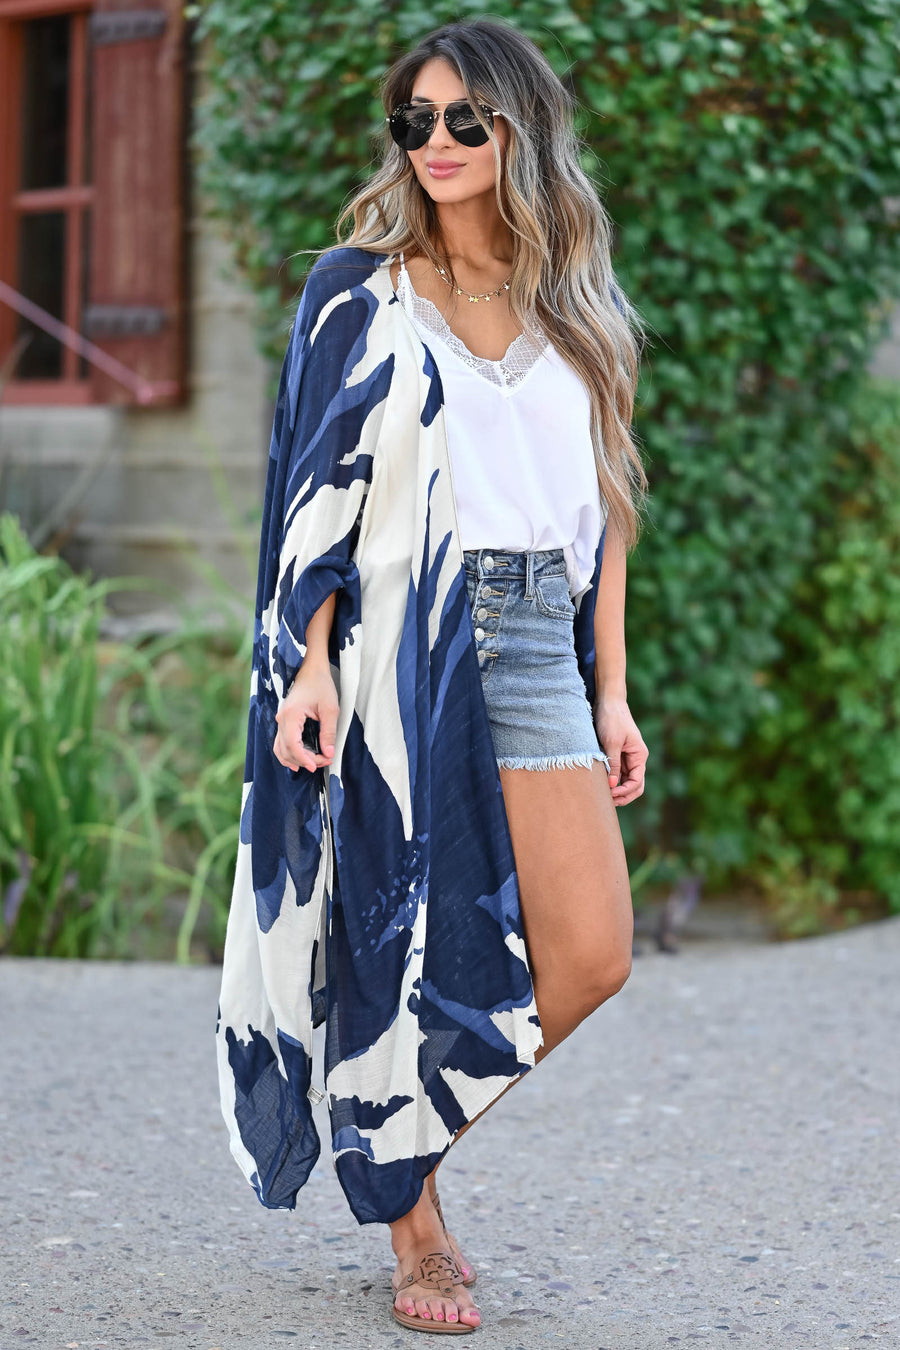 Can't Look Away Kimono - Navy women's open-front draped kimono with side slit details. One size fits most closet candy front